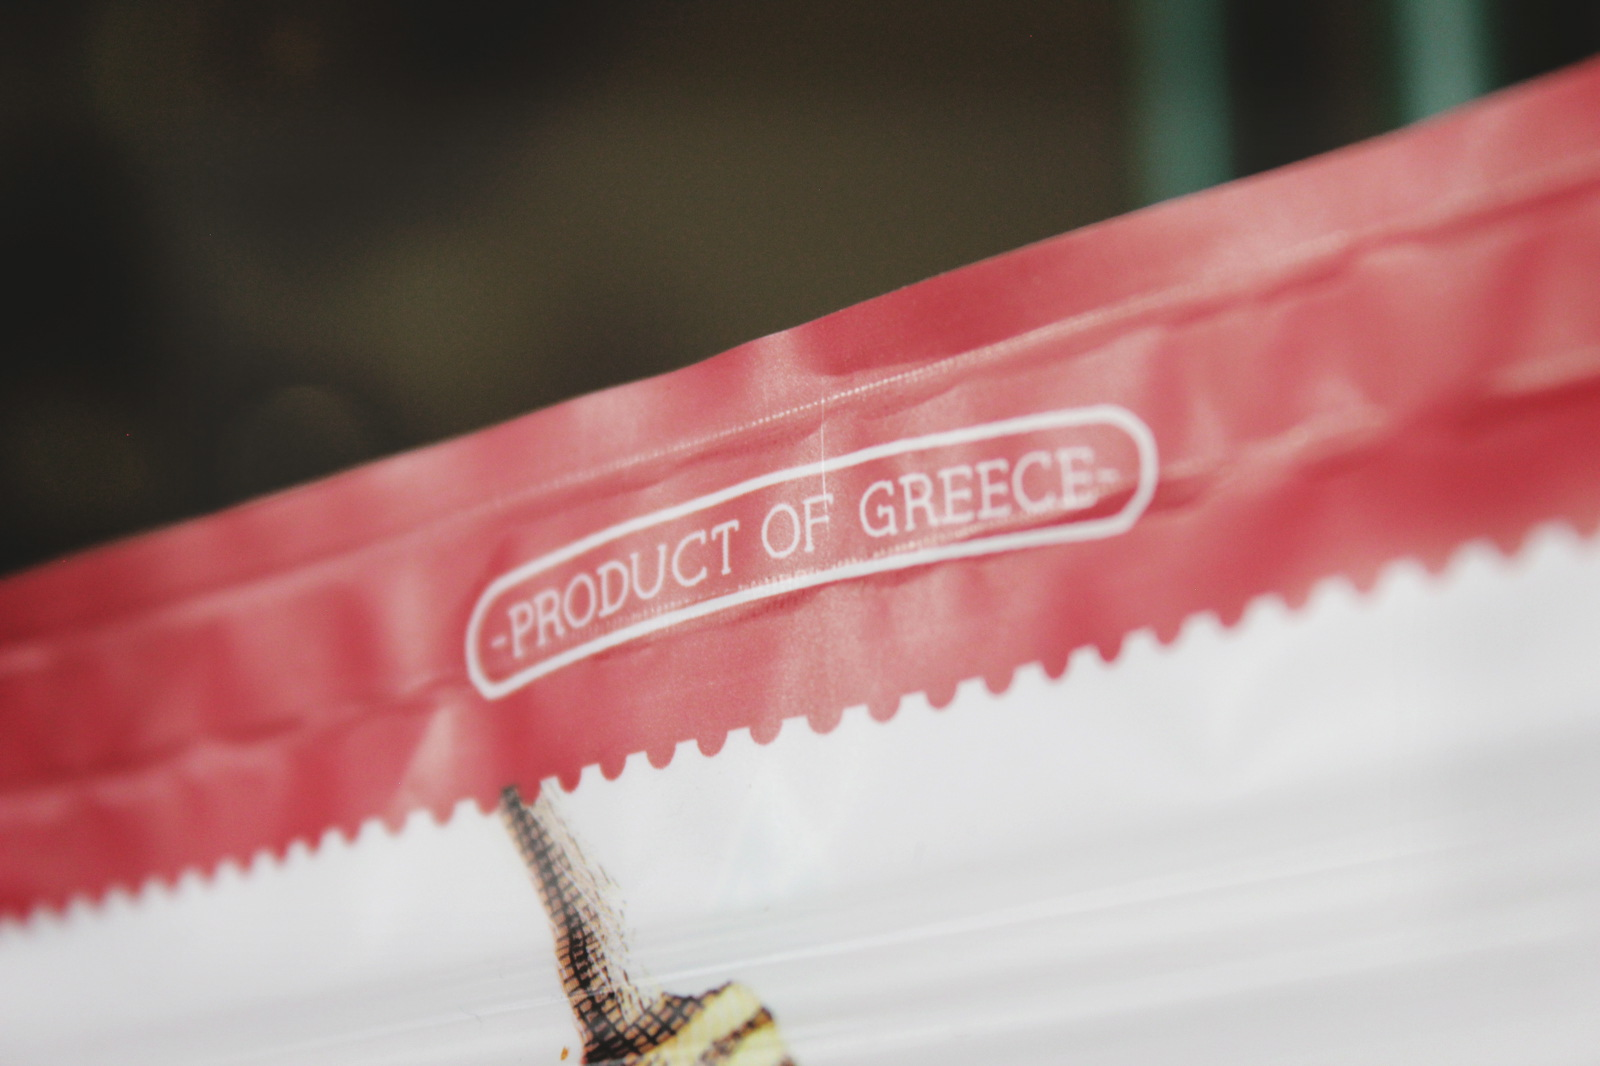 monthlyflavors-griechenland-014-rho-apple-chips-product-of-greece